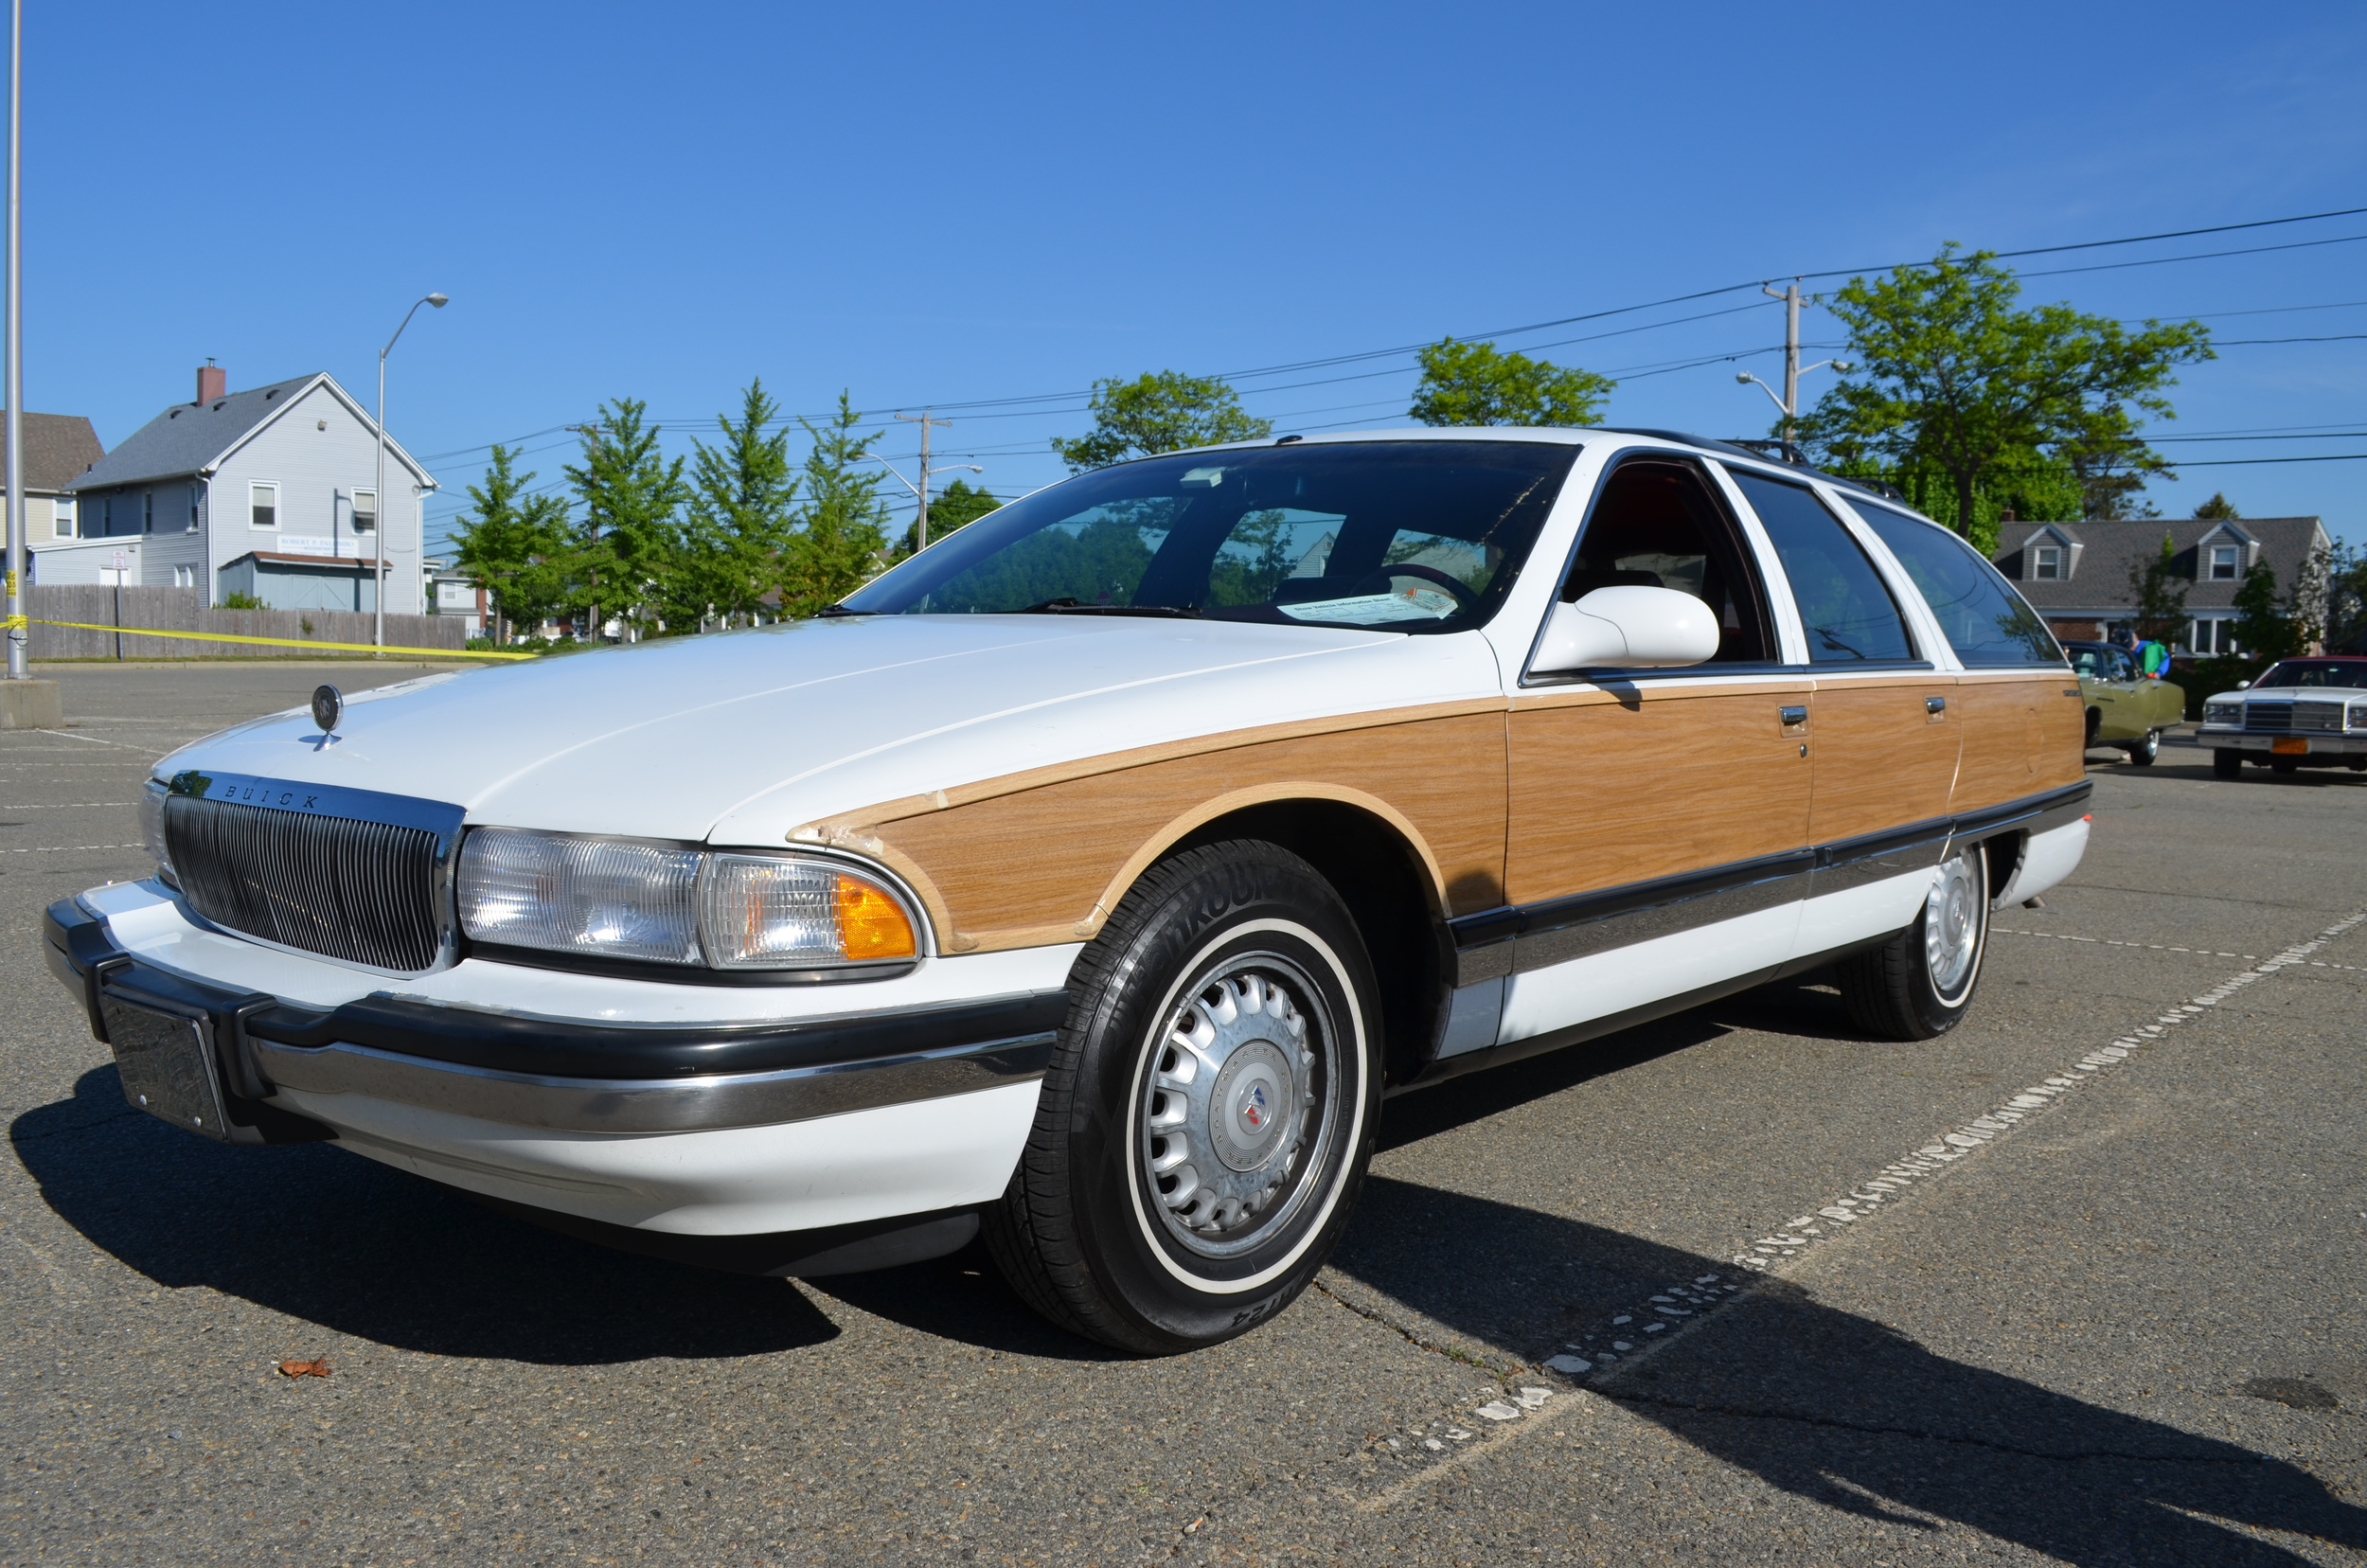 Rudy Kuhn: 1996 Roadmaster Estate Wagon